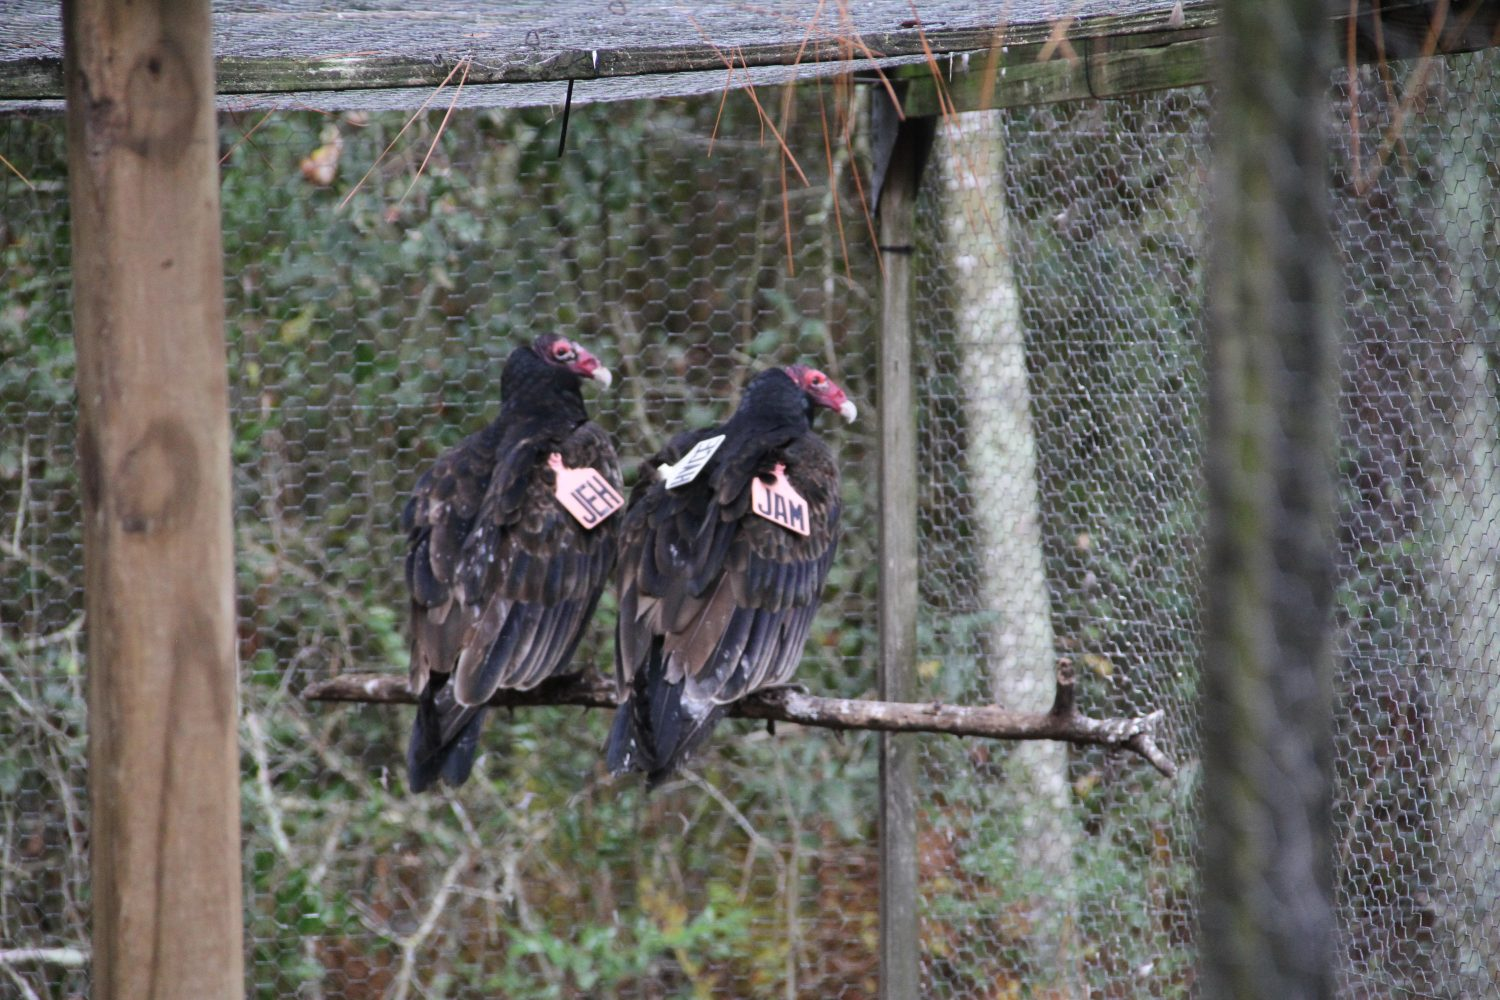 The National Wildlife Research Center in Gainesville puts tags on the vultures while being studied. The Center is studying their behavior and movement patterns.